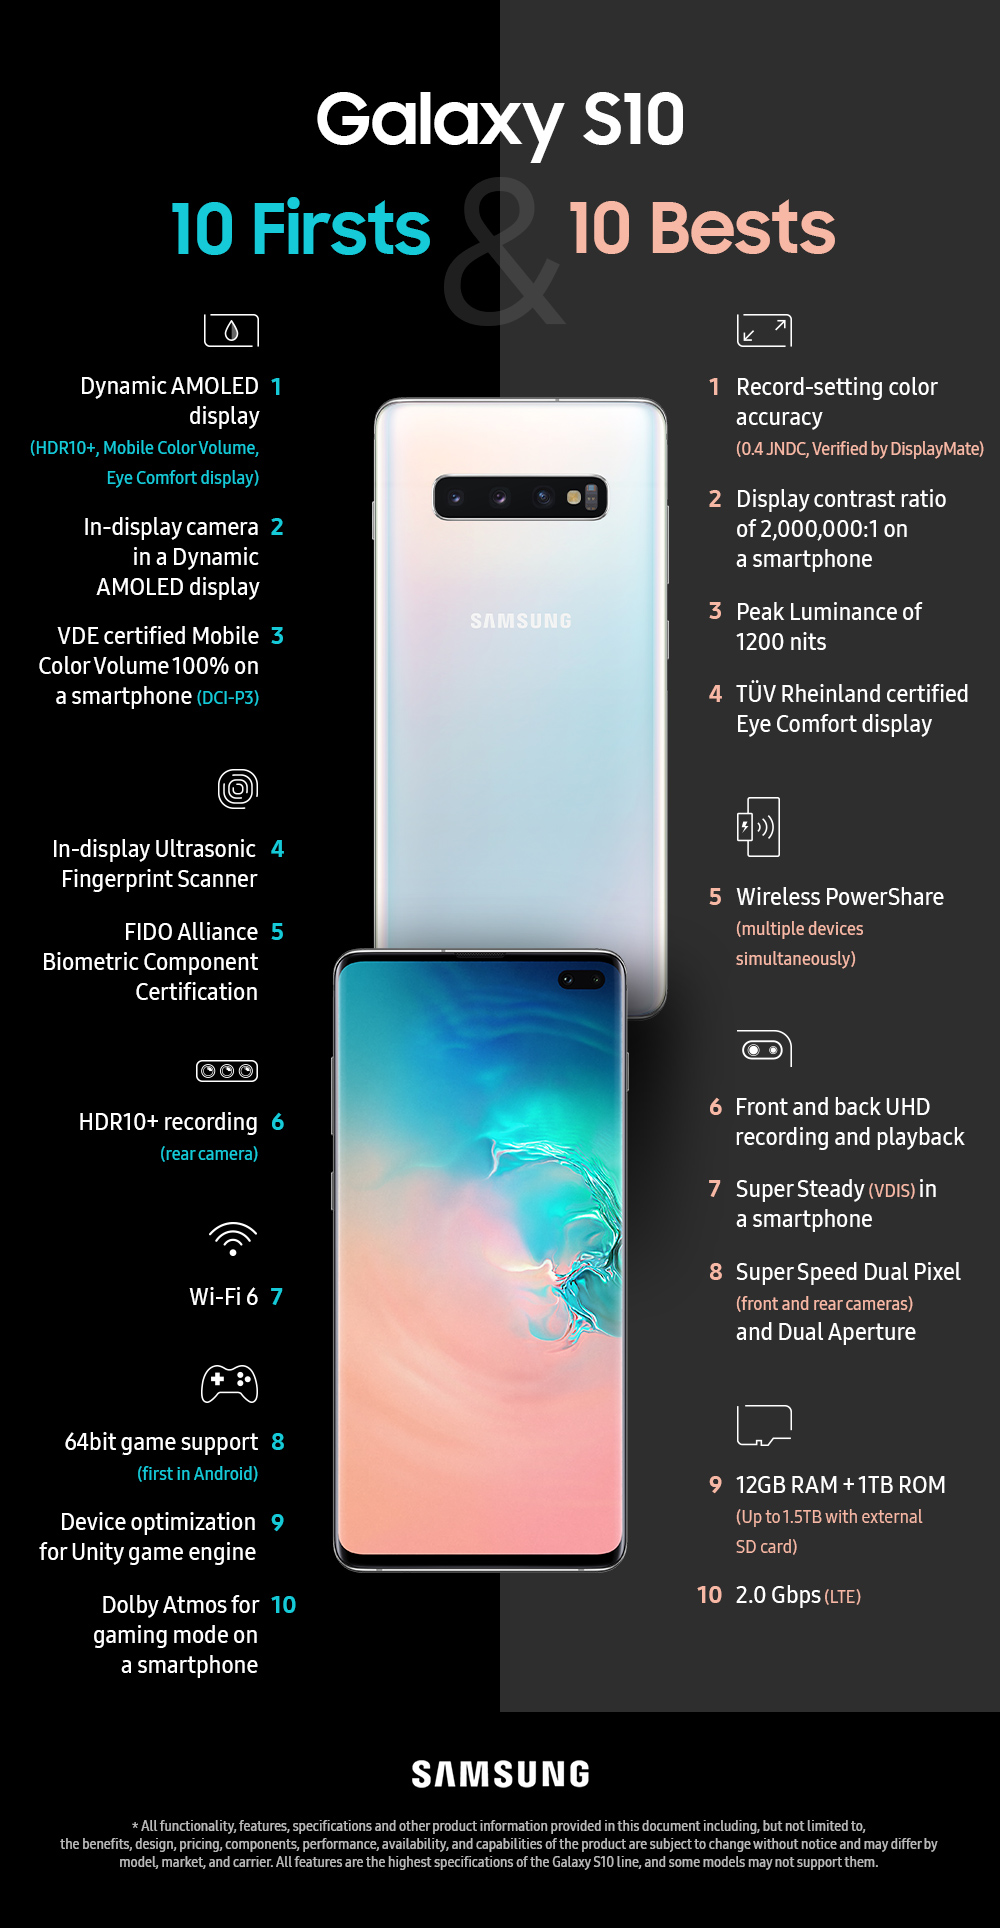 Galaxy-S10-First-Best_Infographic